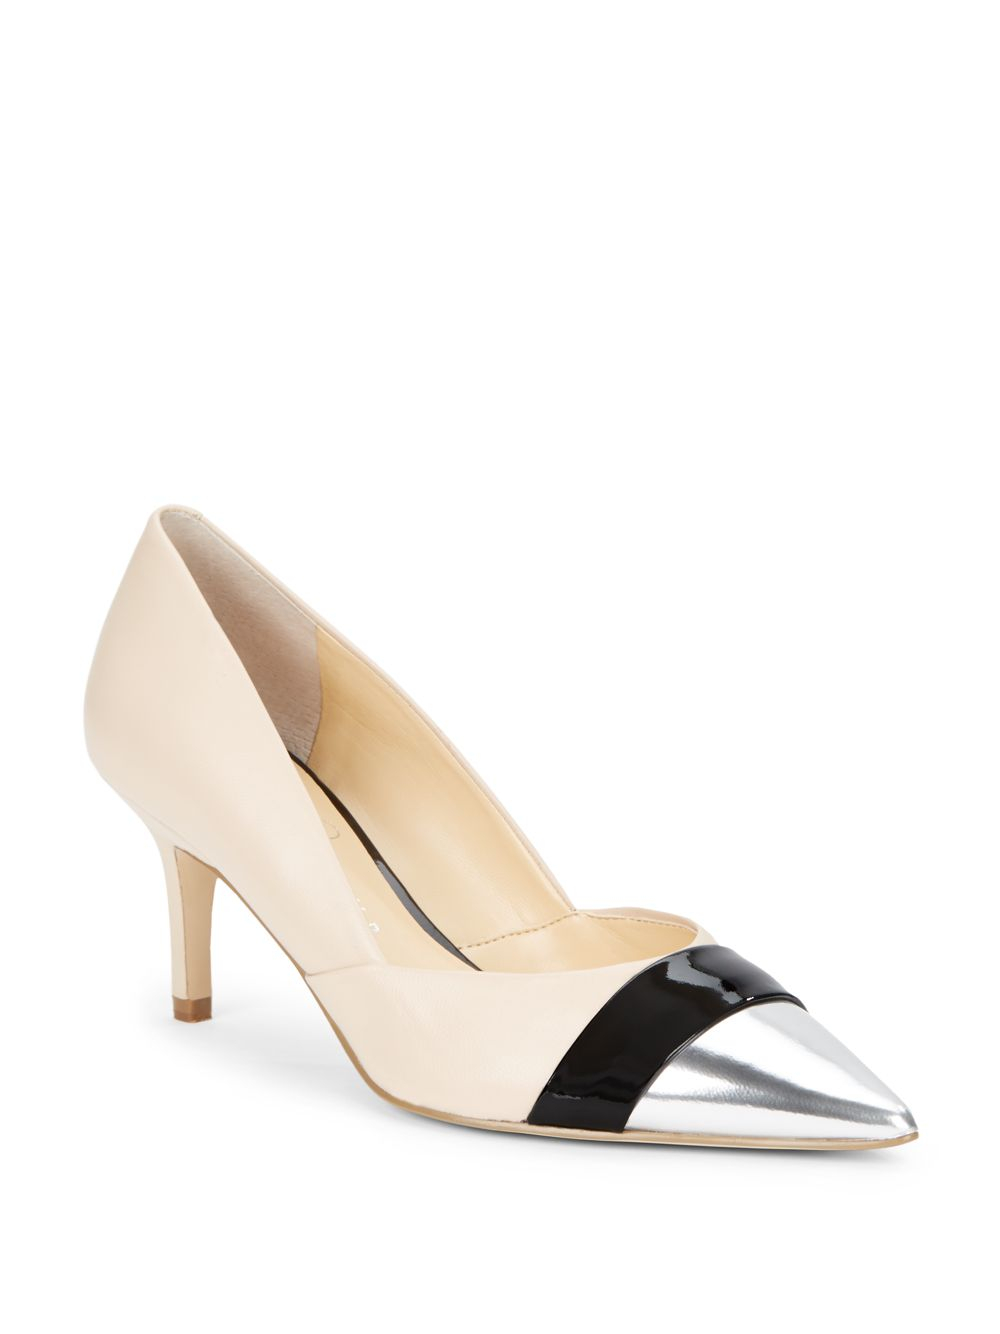 320ee28f1f5 Lyst - Ivanka Trump Nyle Tri-Color Pumps Nude in Natural